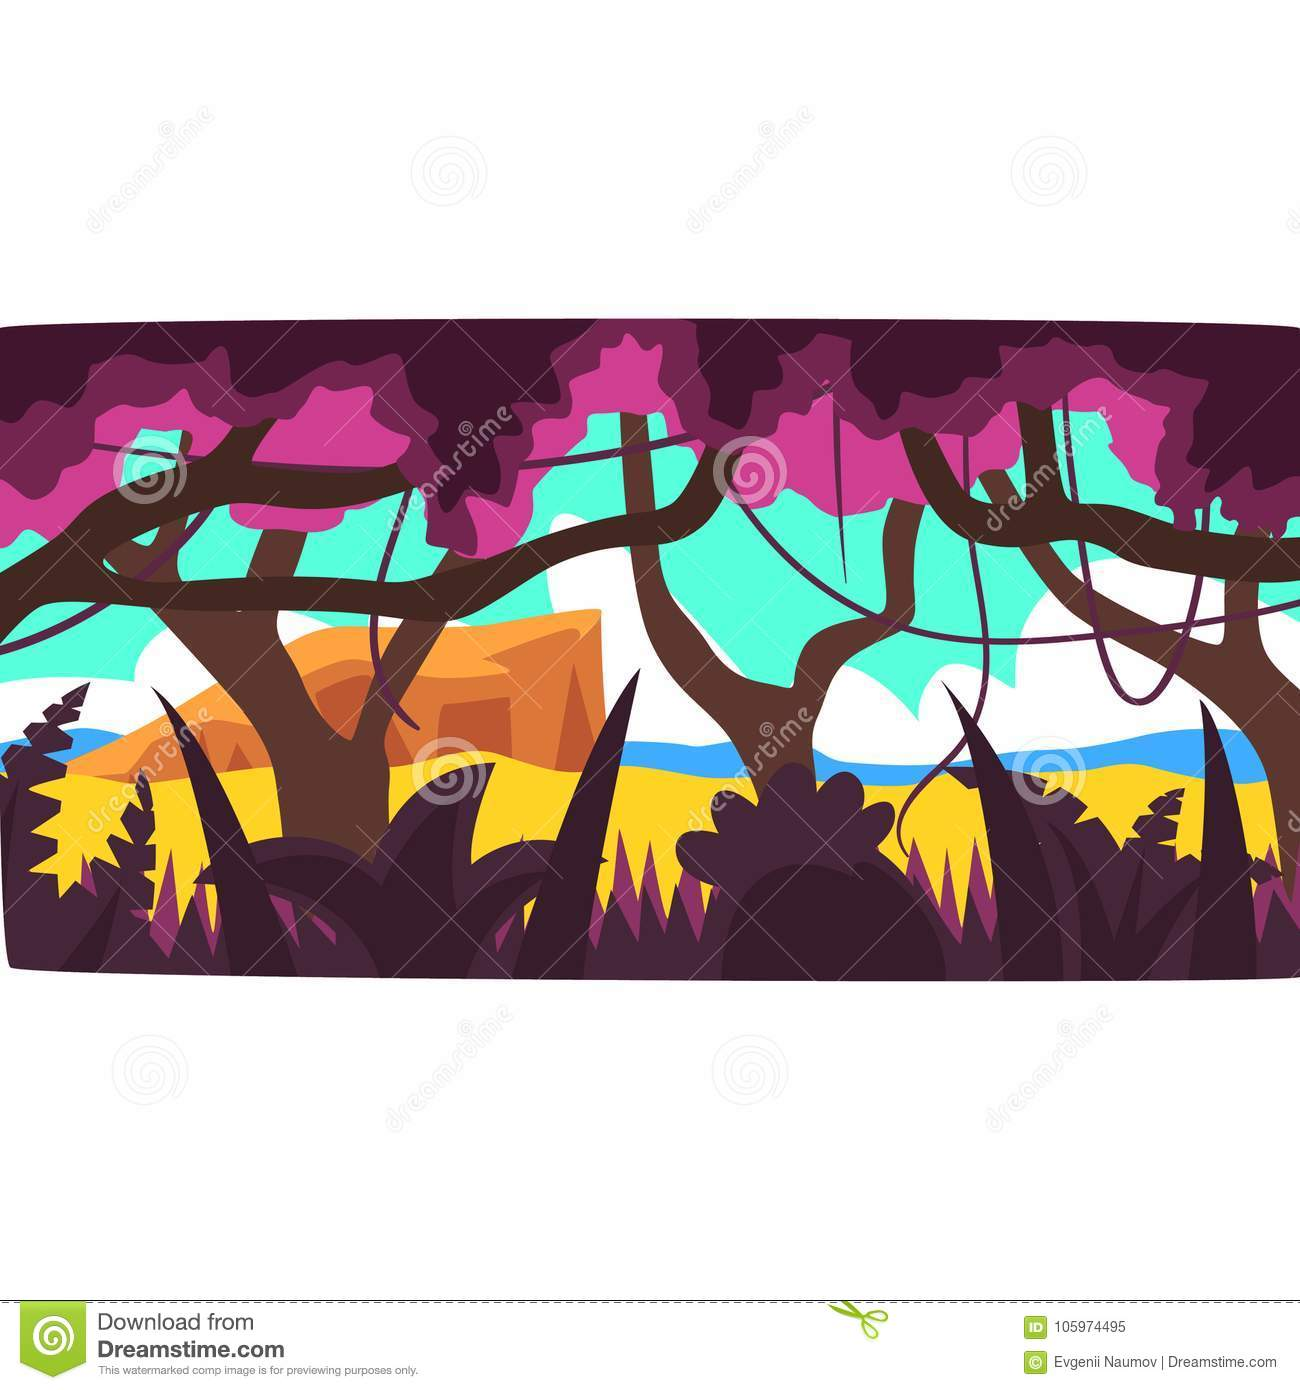 Tropical jungle, greenwood background with leaves, bushes and trees, tropical rainforest scenery in a day time vector